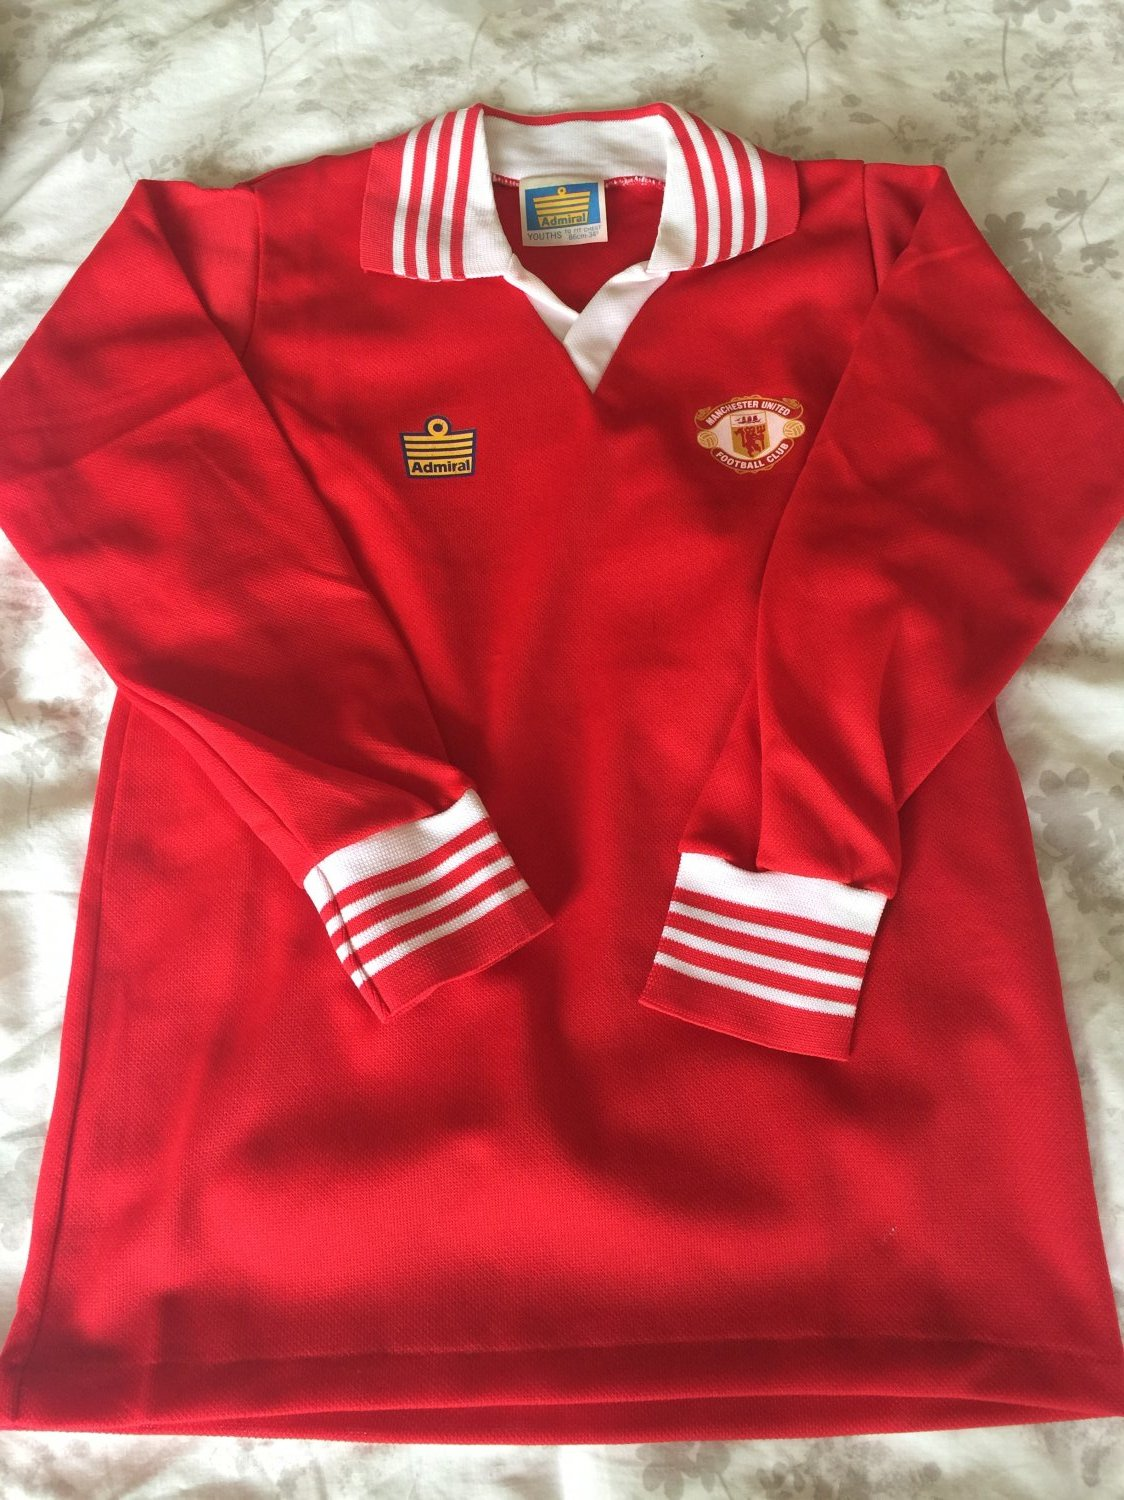 9ca5b892262 Manchester United Home Maillot de foot 1975 - 1977. Sponsored by no ...